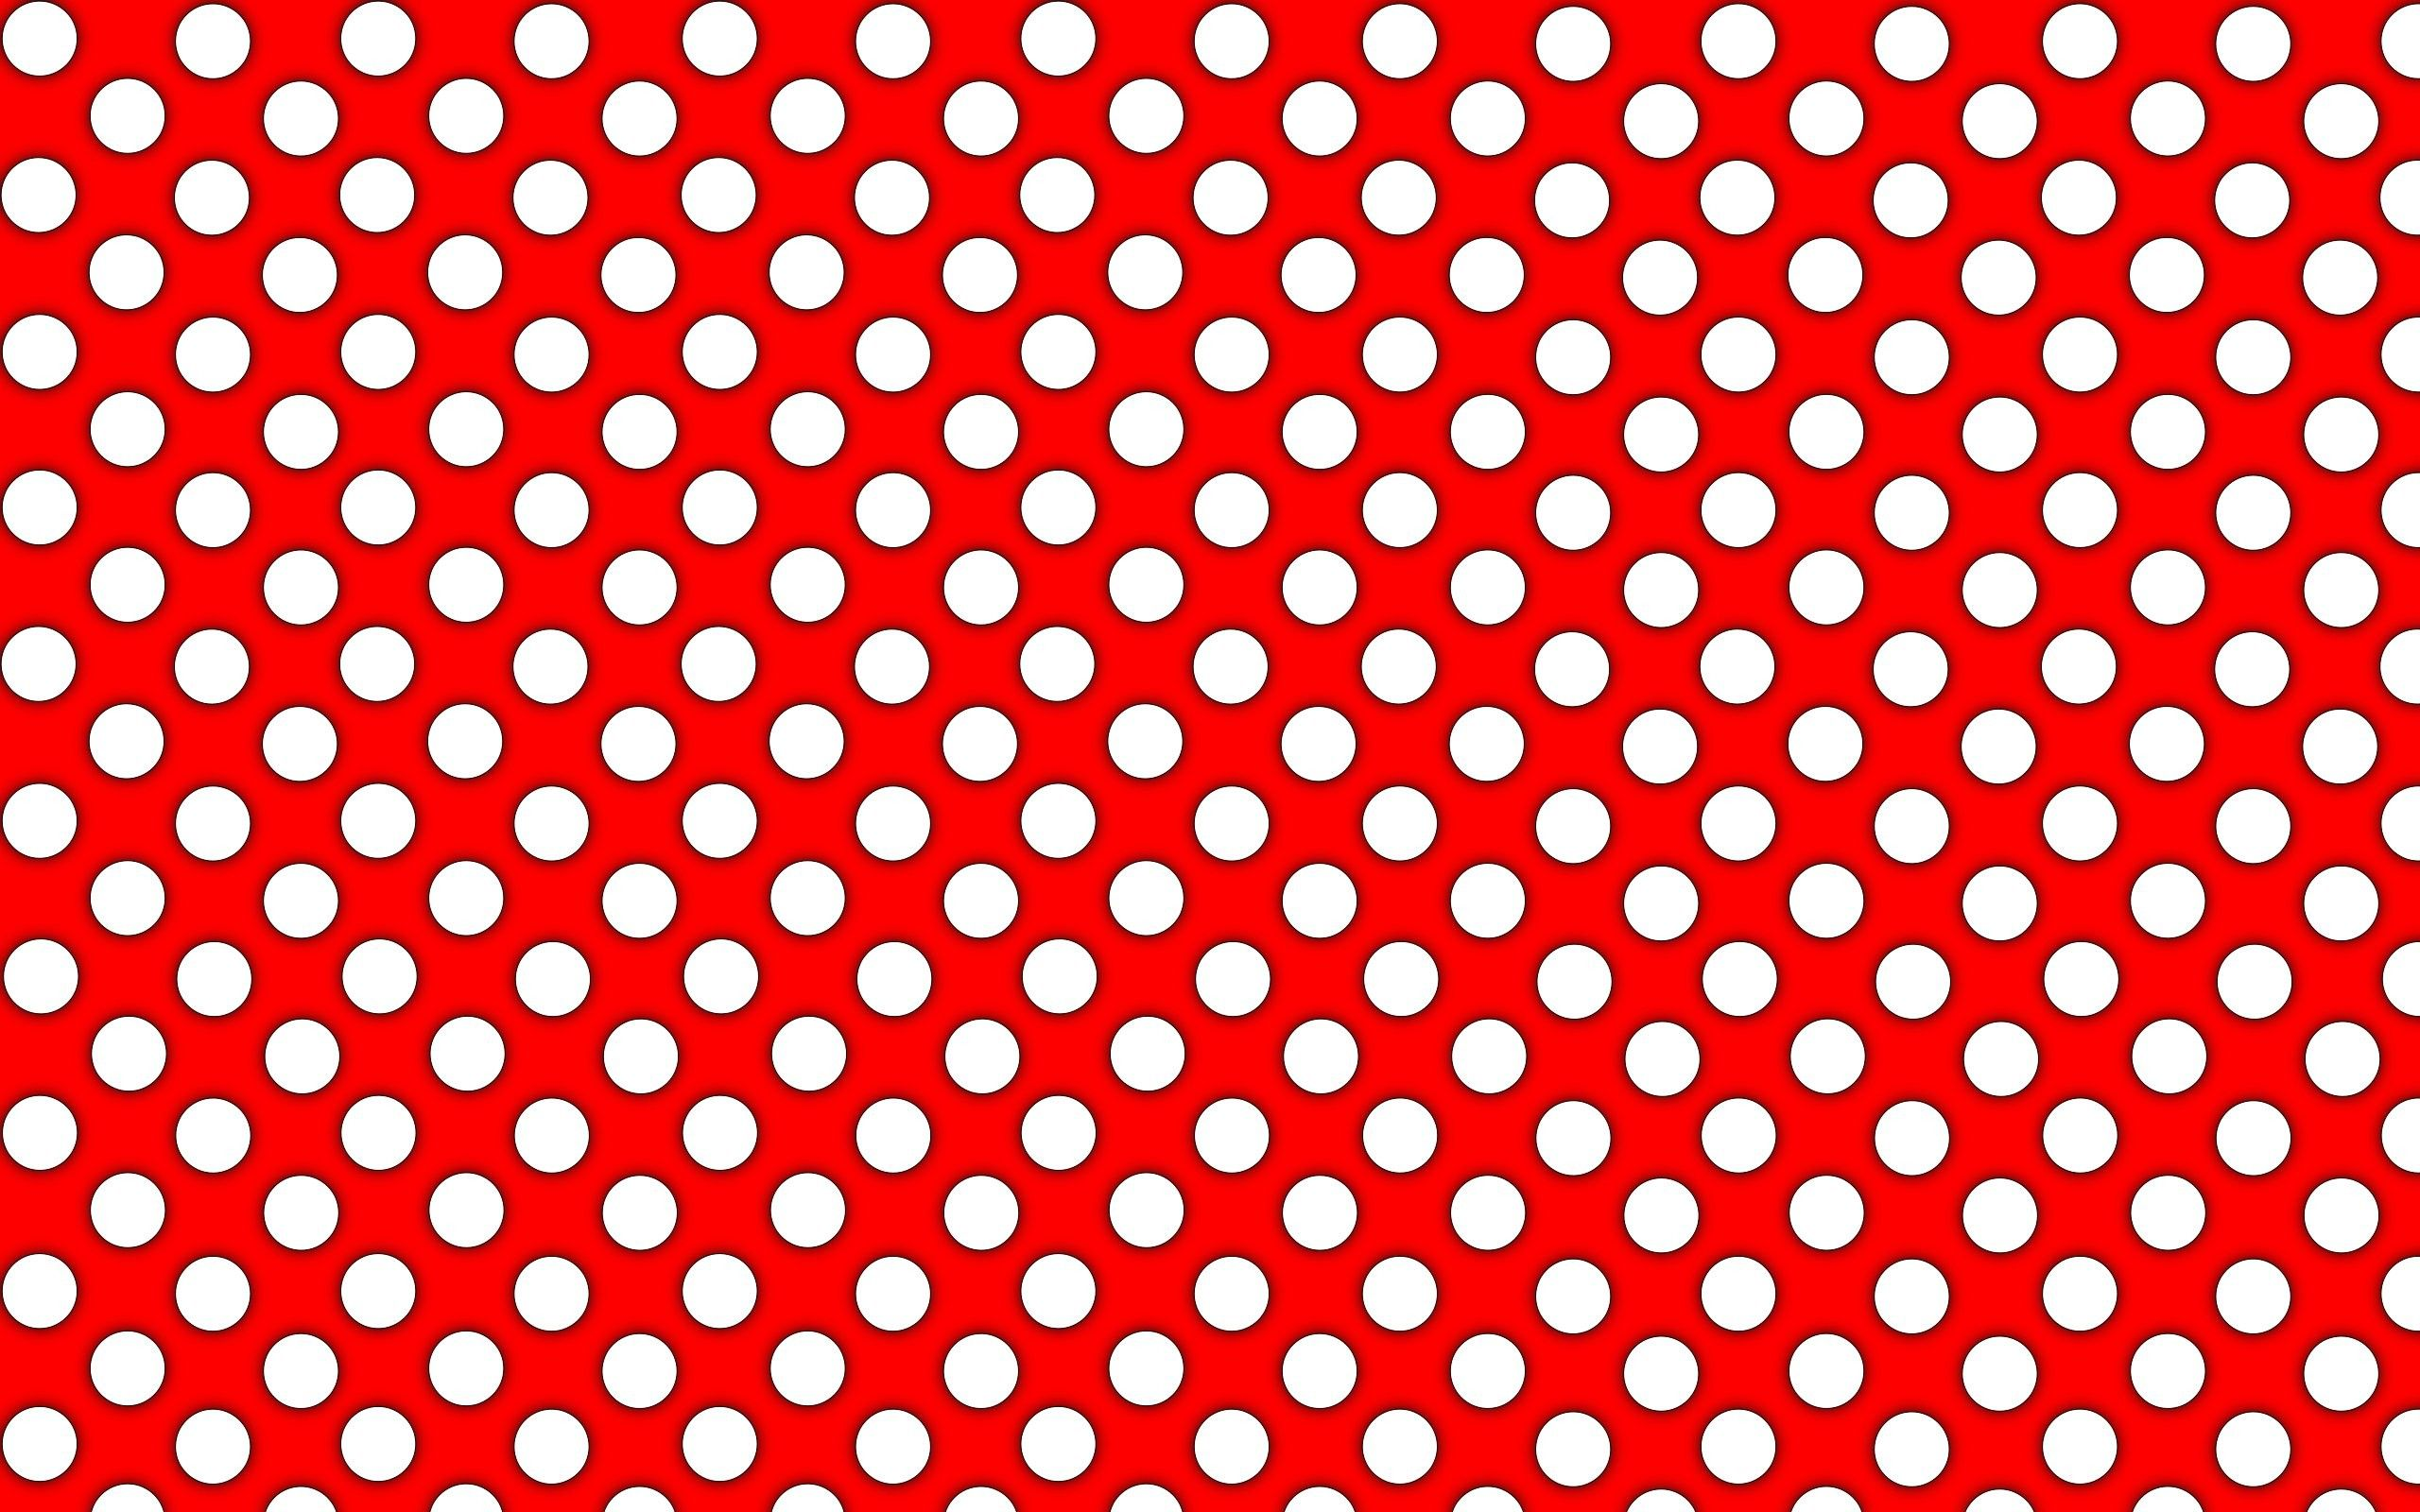 RED WHITE POLKA DOT WALLPAPER RASCH 442311